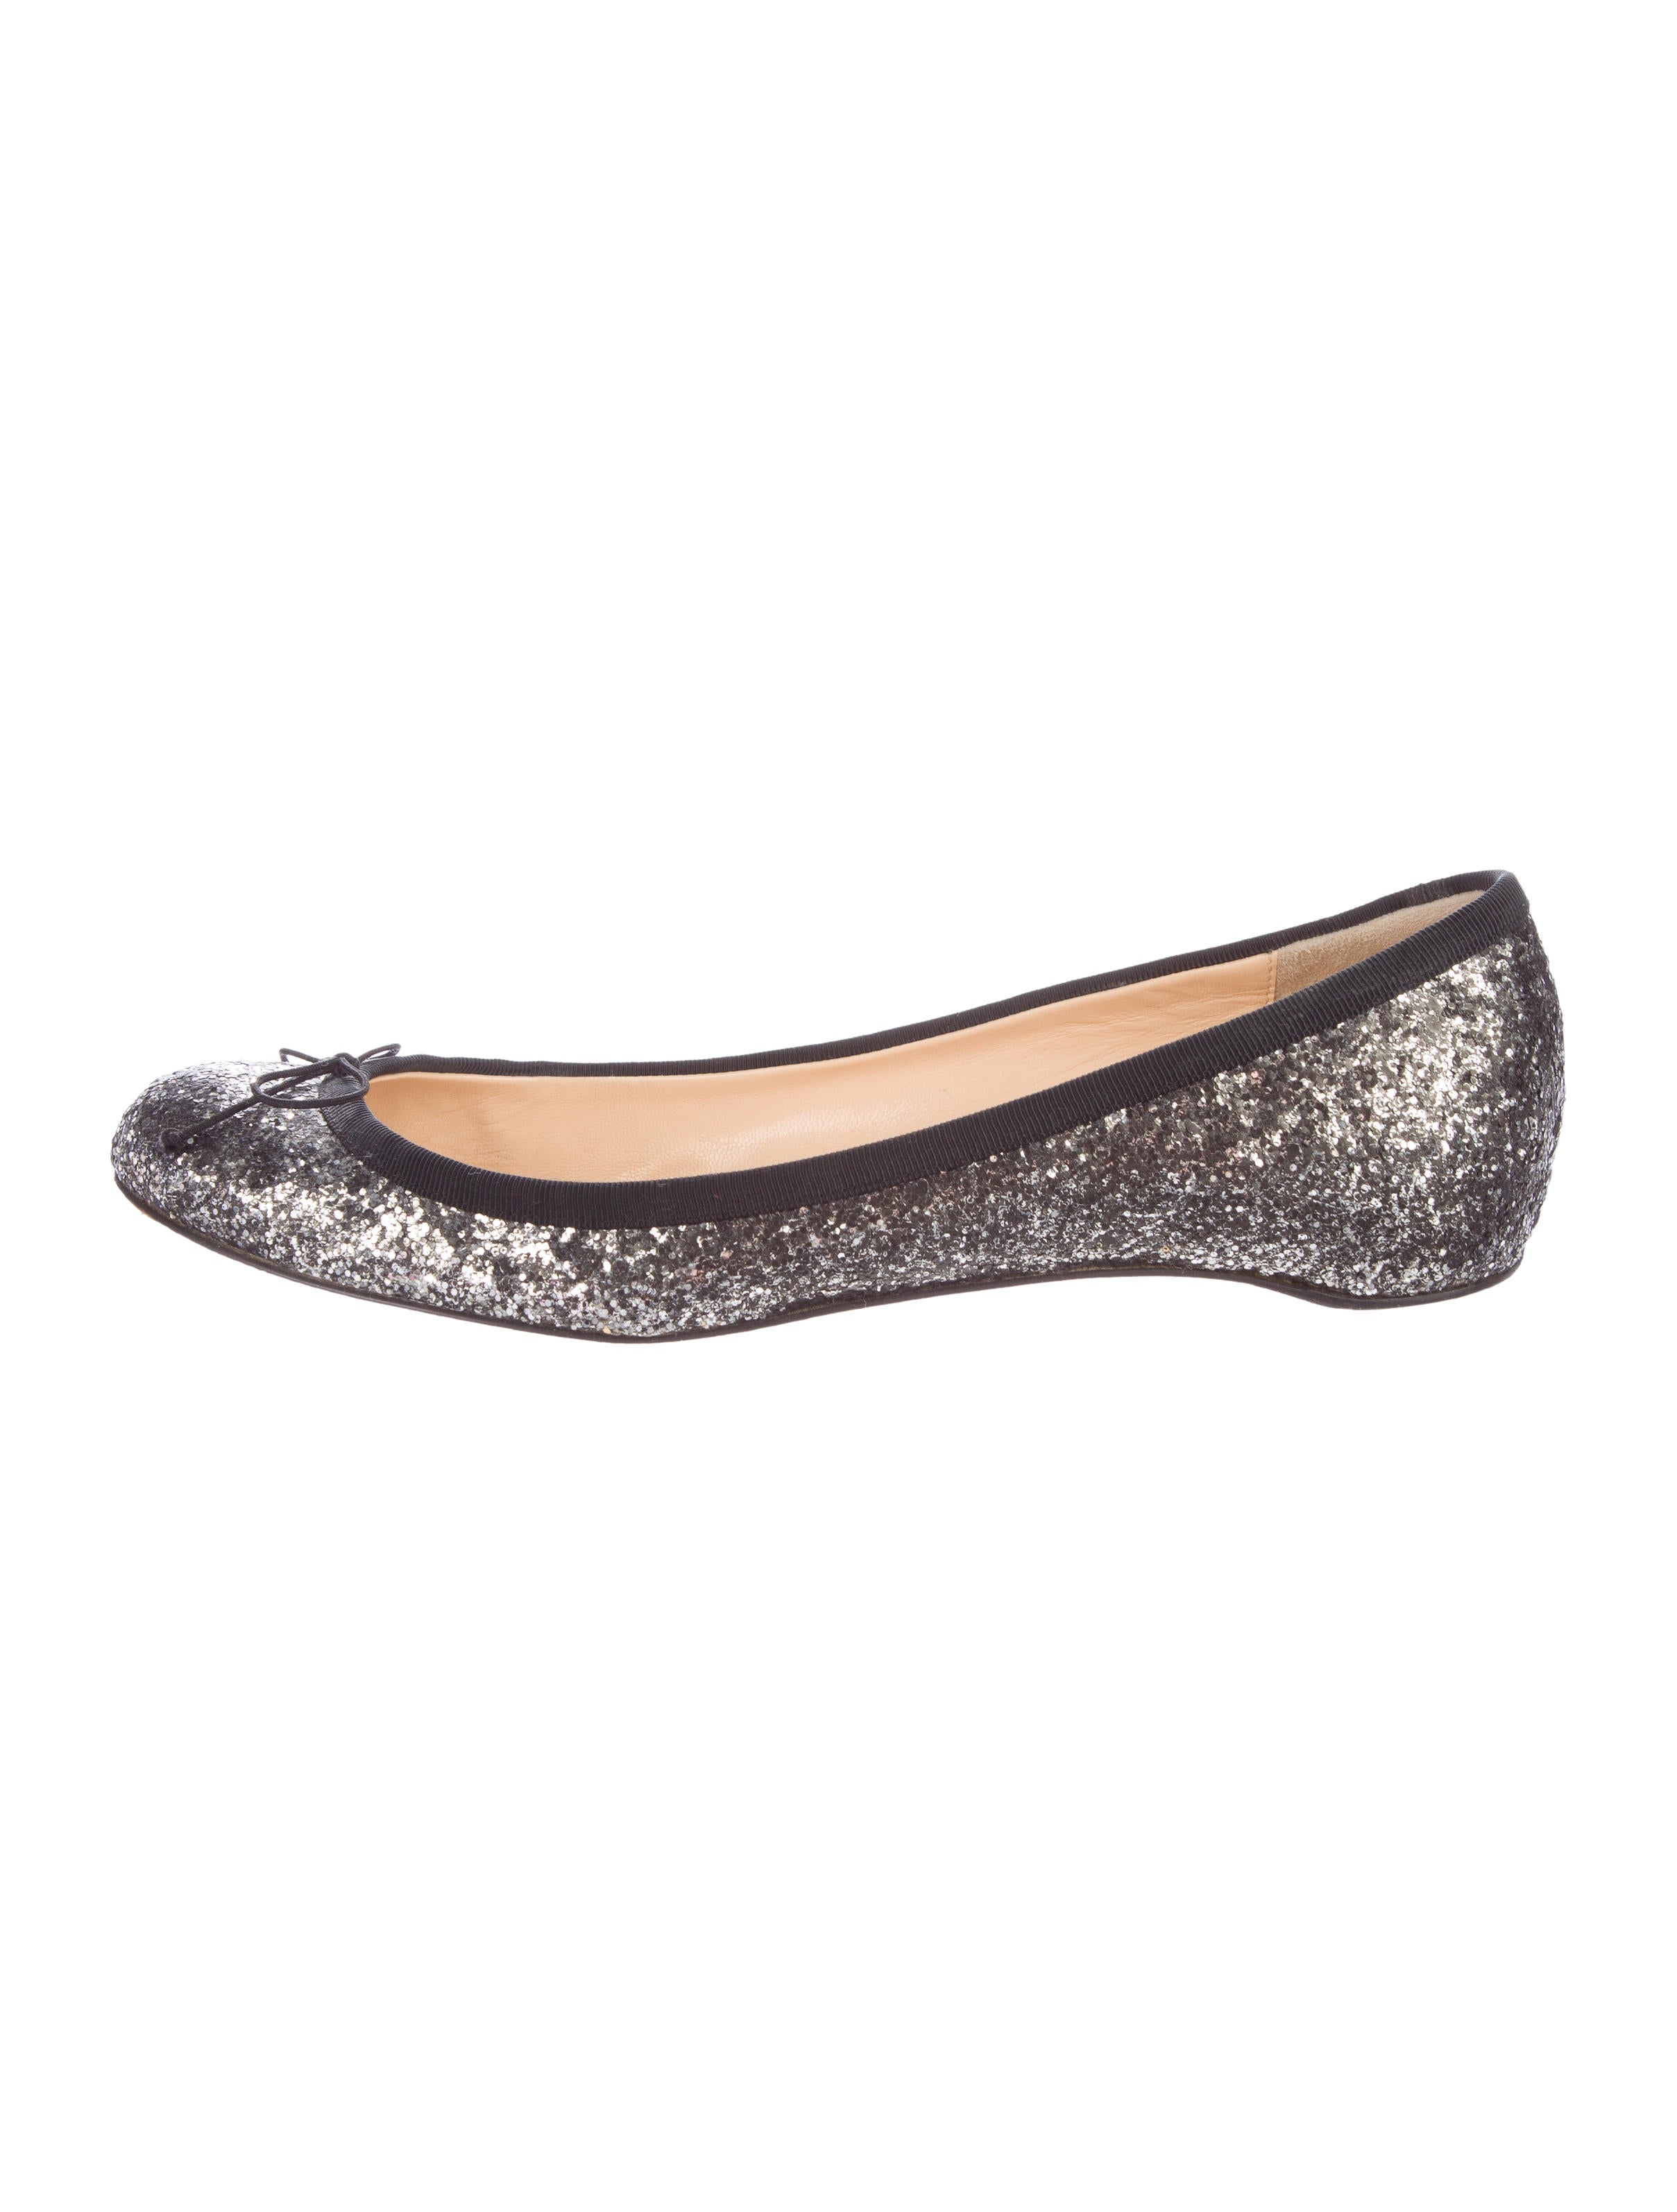 clearance low shipping fee outlet geniue stockist Christian Louboutin Glitter Round-Toe Flats znflIDvzz